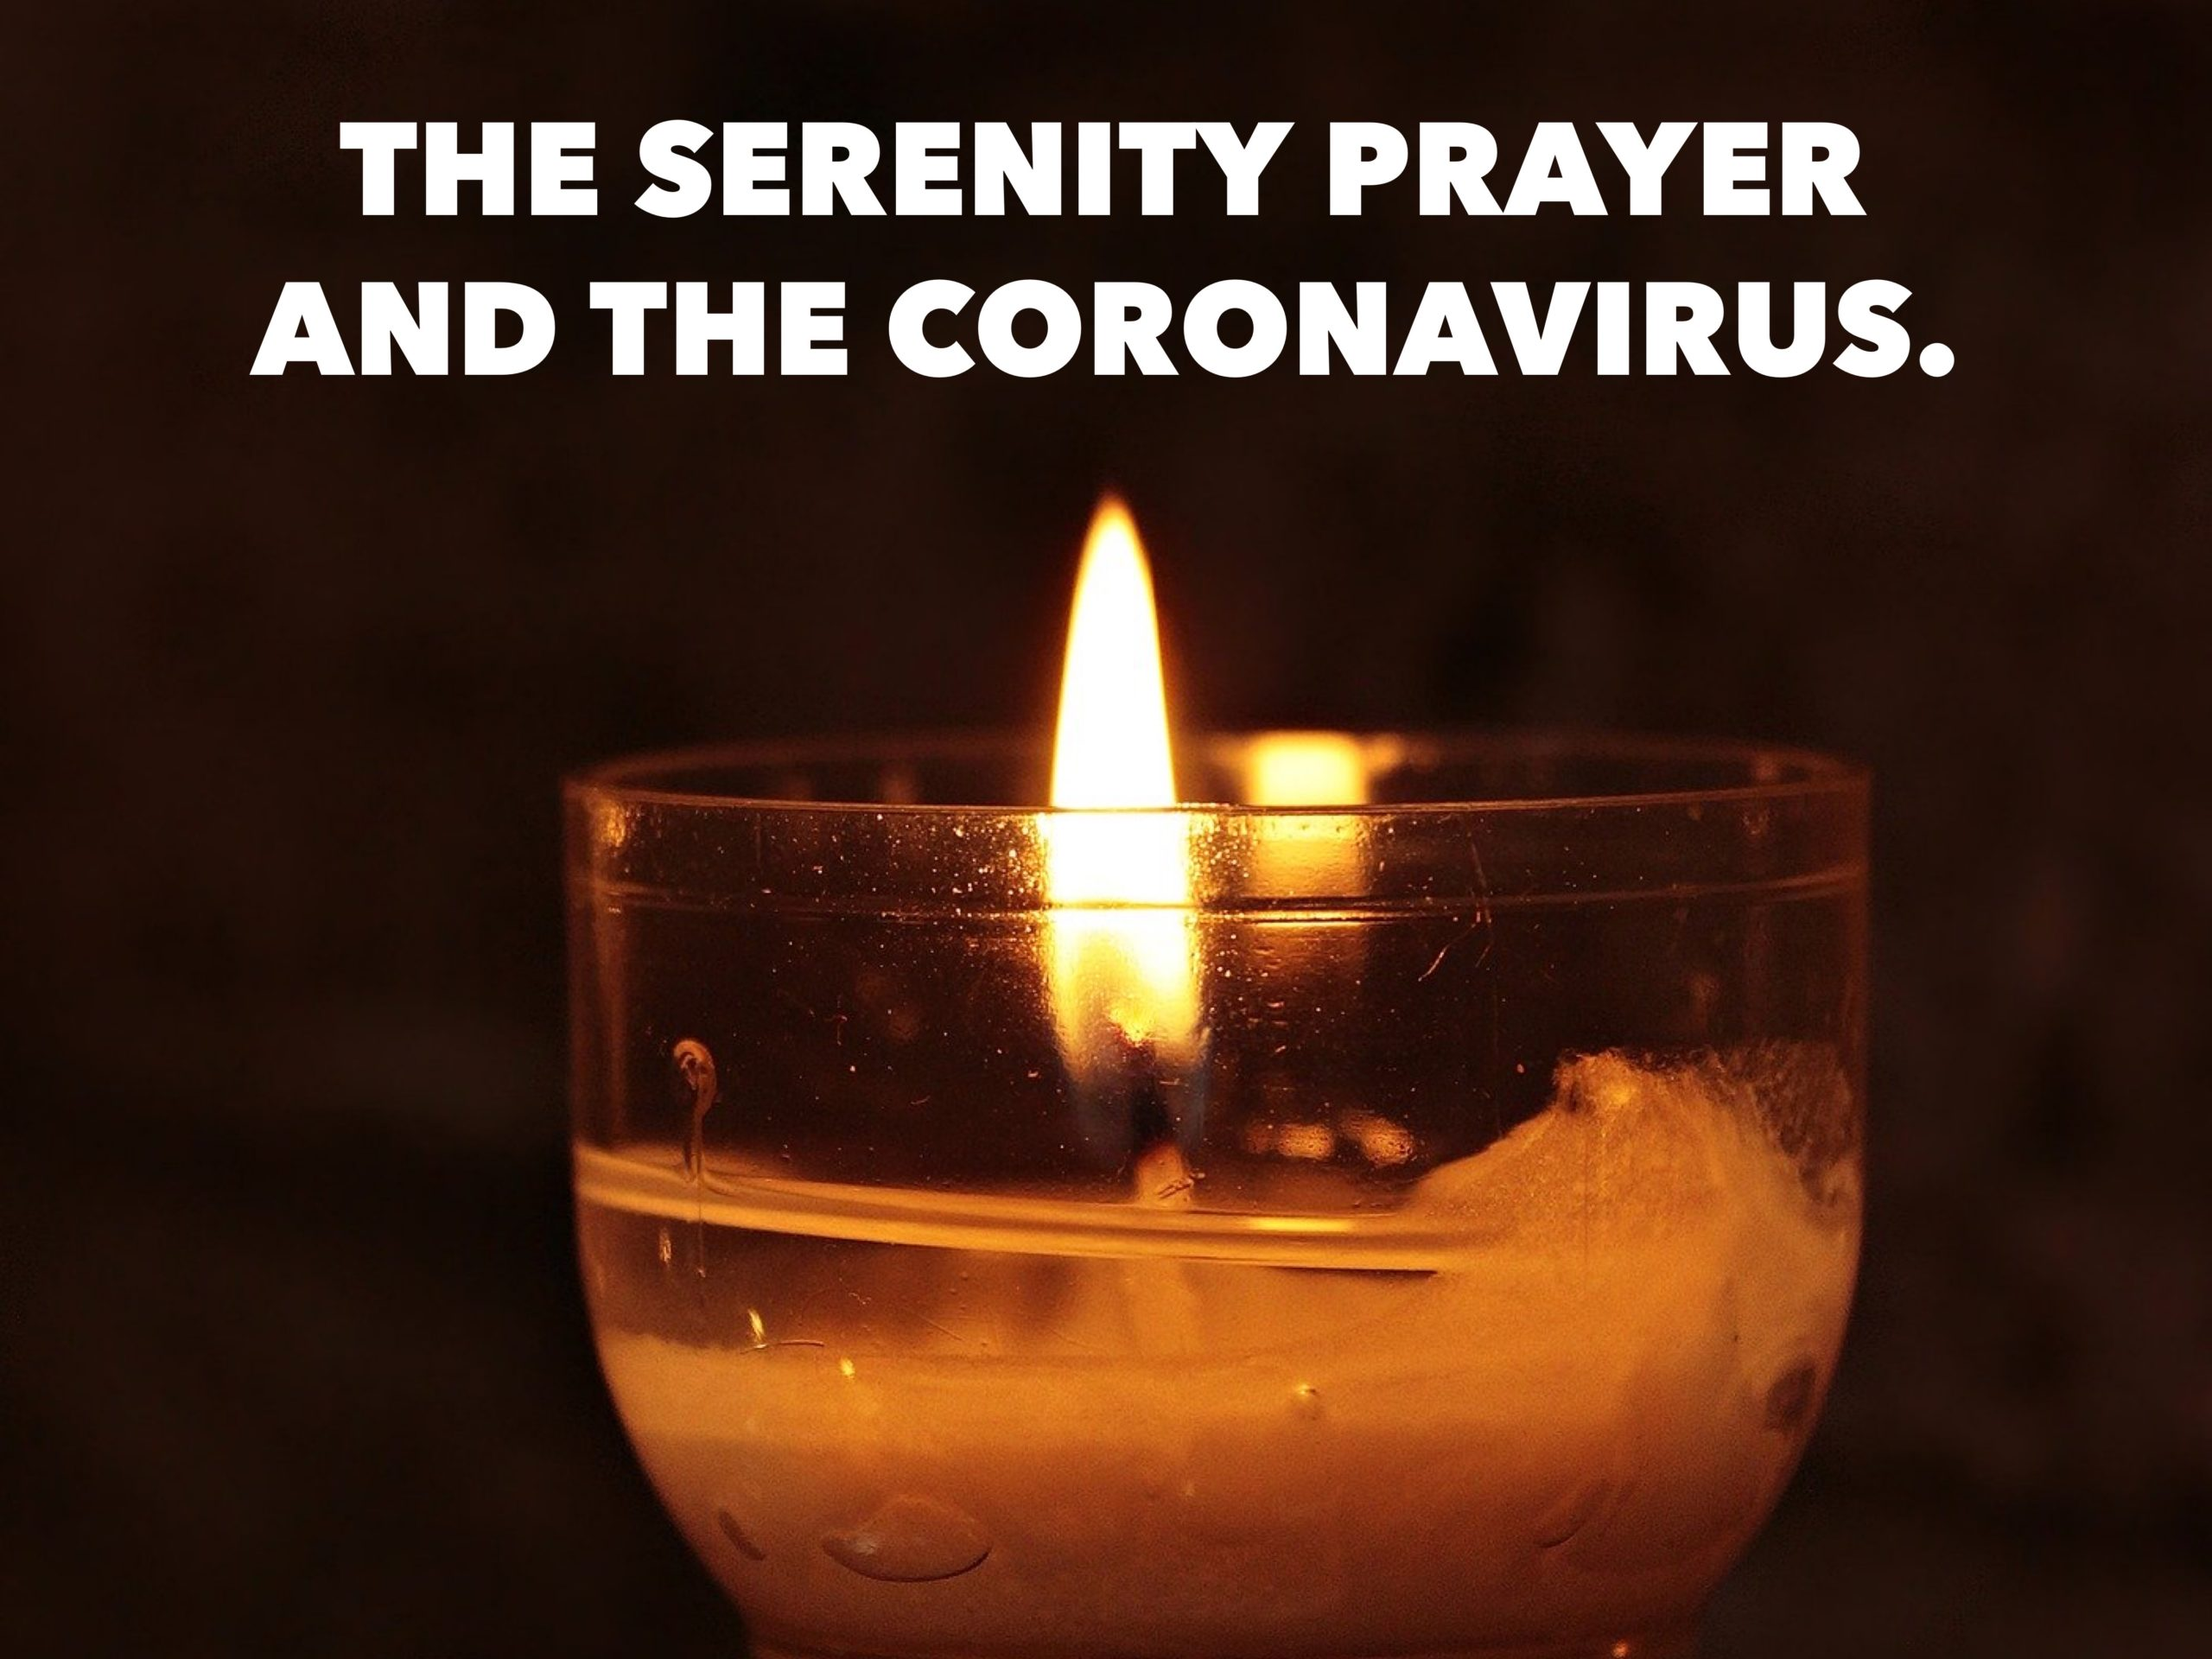 The Serenity Prayer and The Coronavirus.